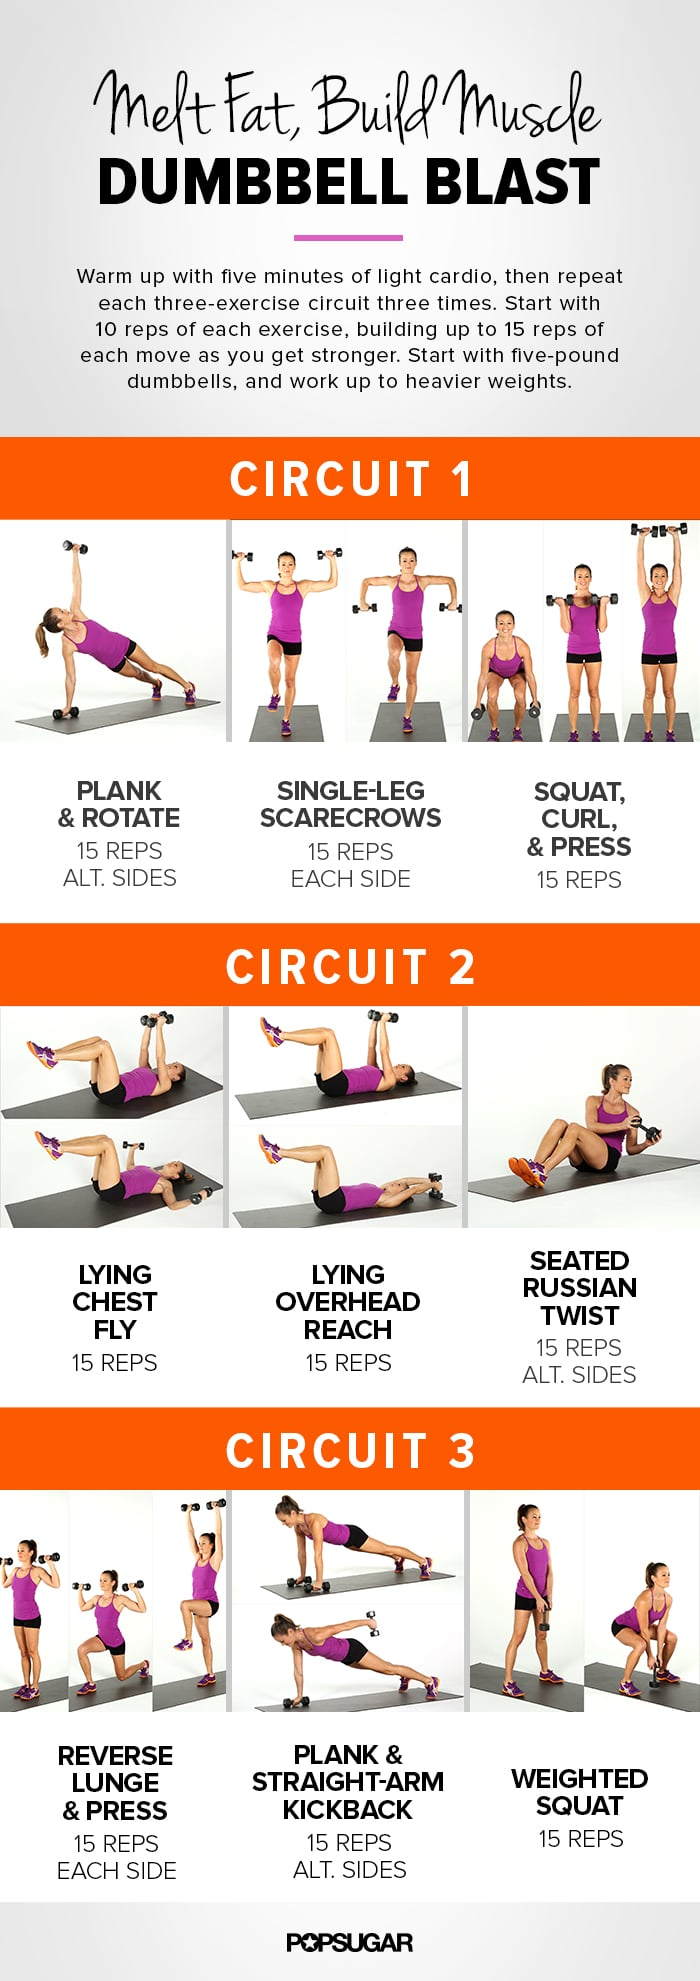 Melt Fat Build Muscle Dumbbell Blast Circuit Workout